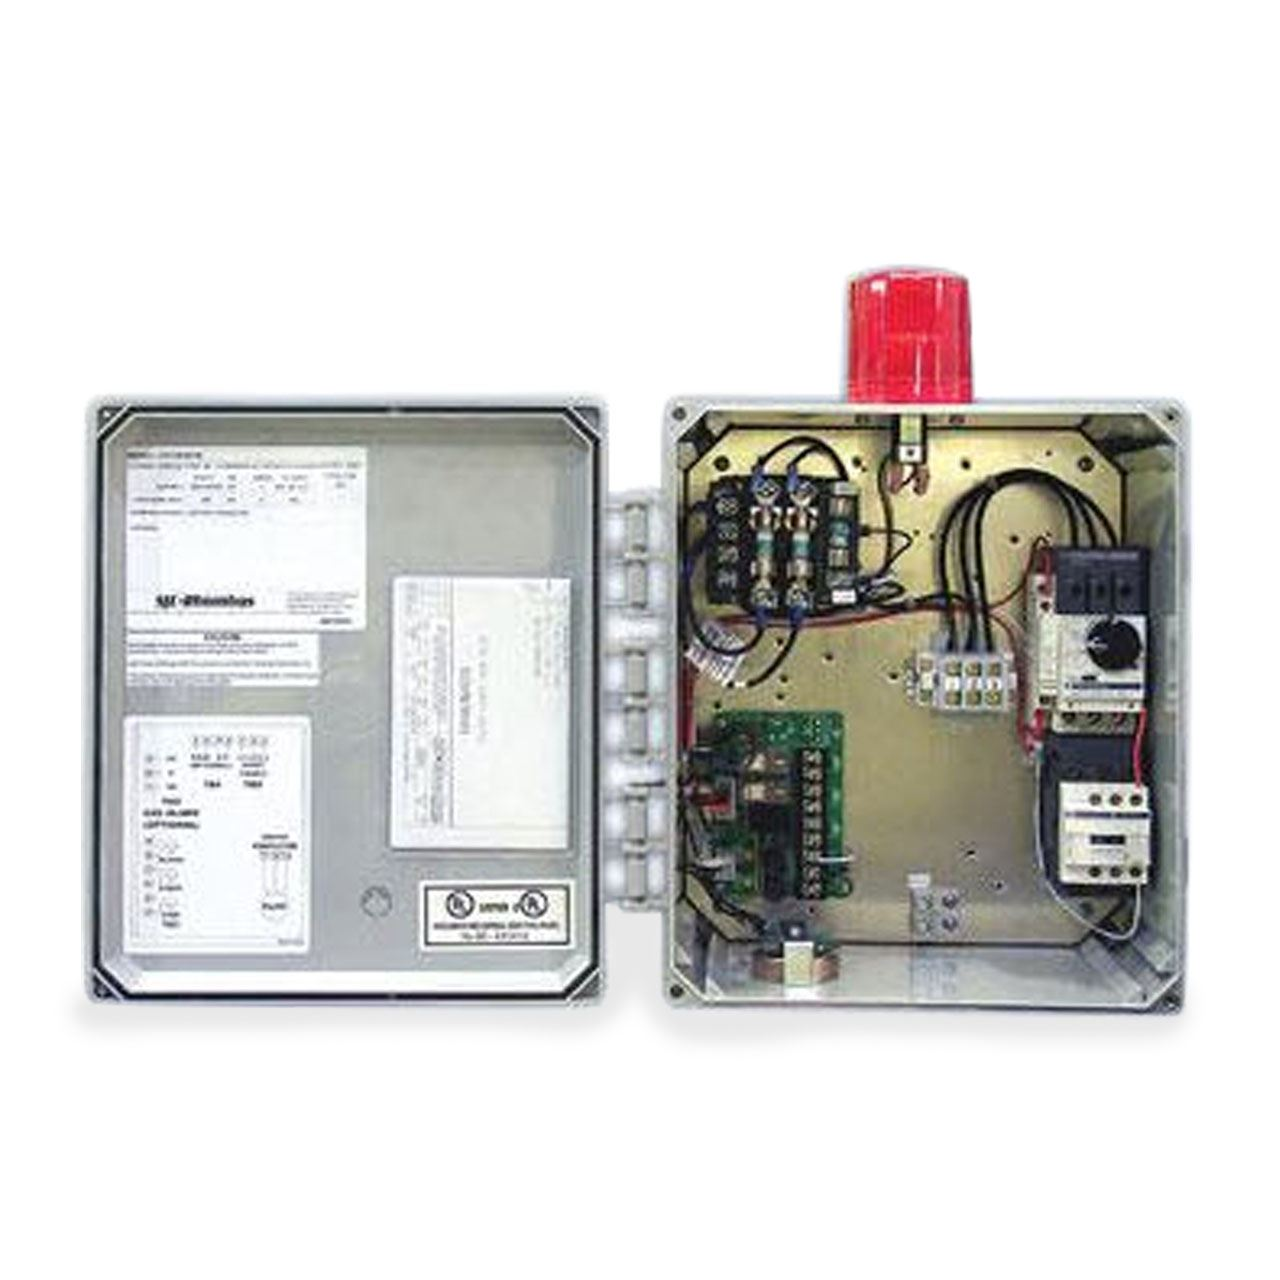 240 3 Phase Contactor Wiring Diagrams Instructions Prev Next At